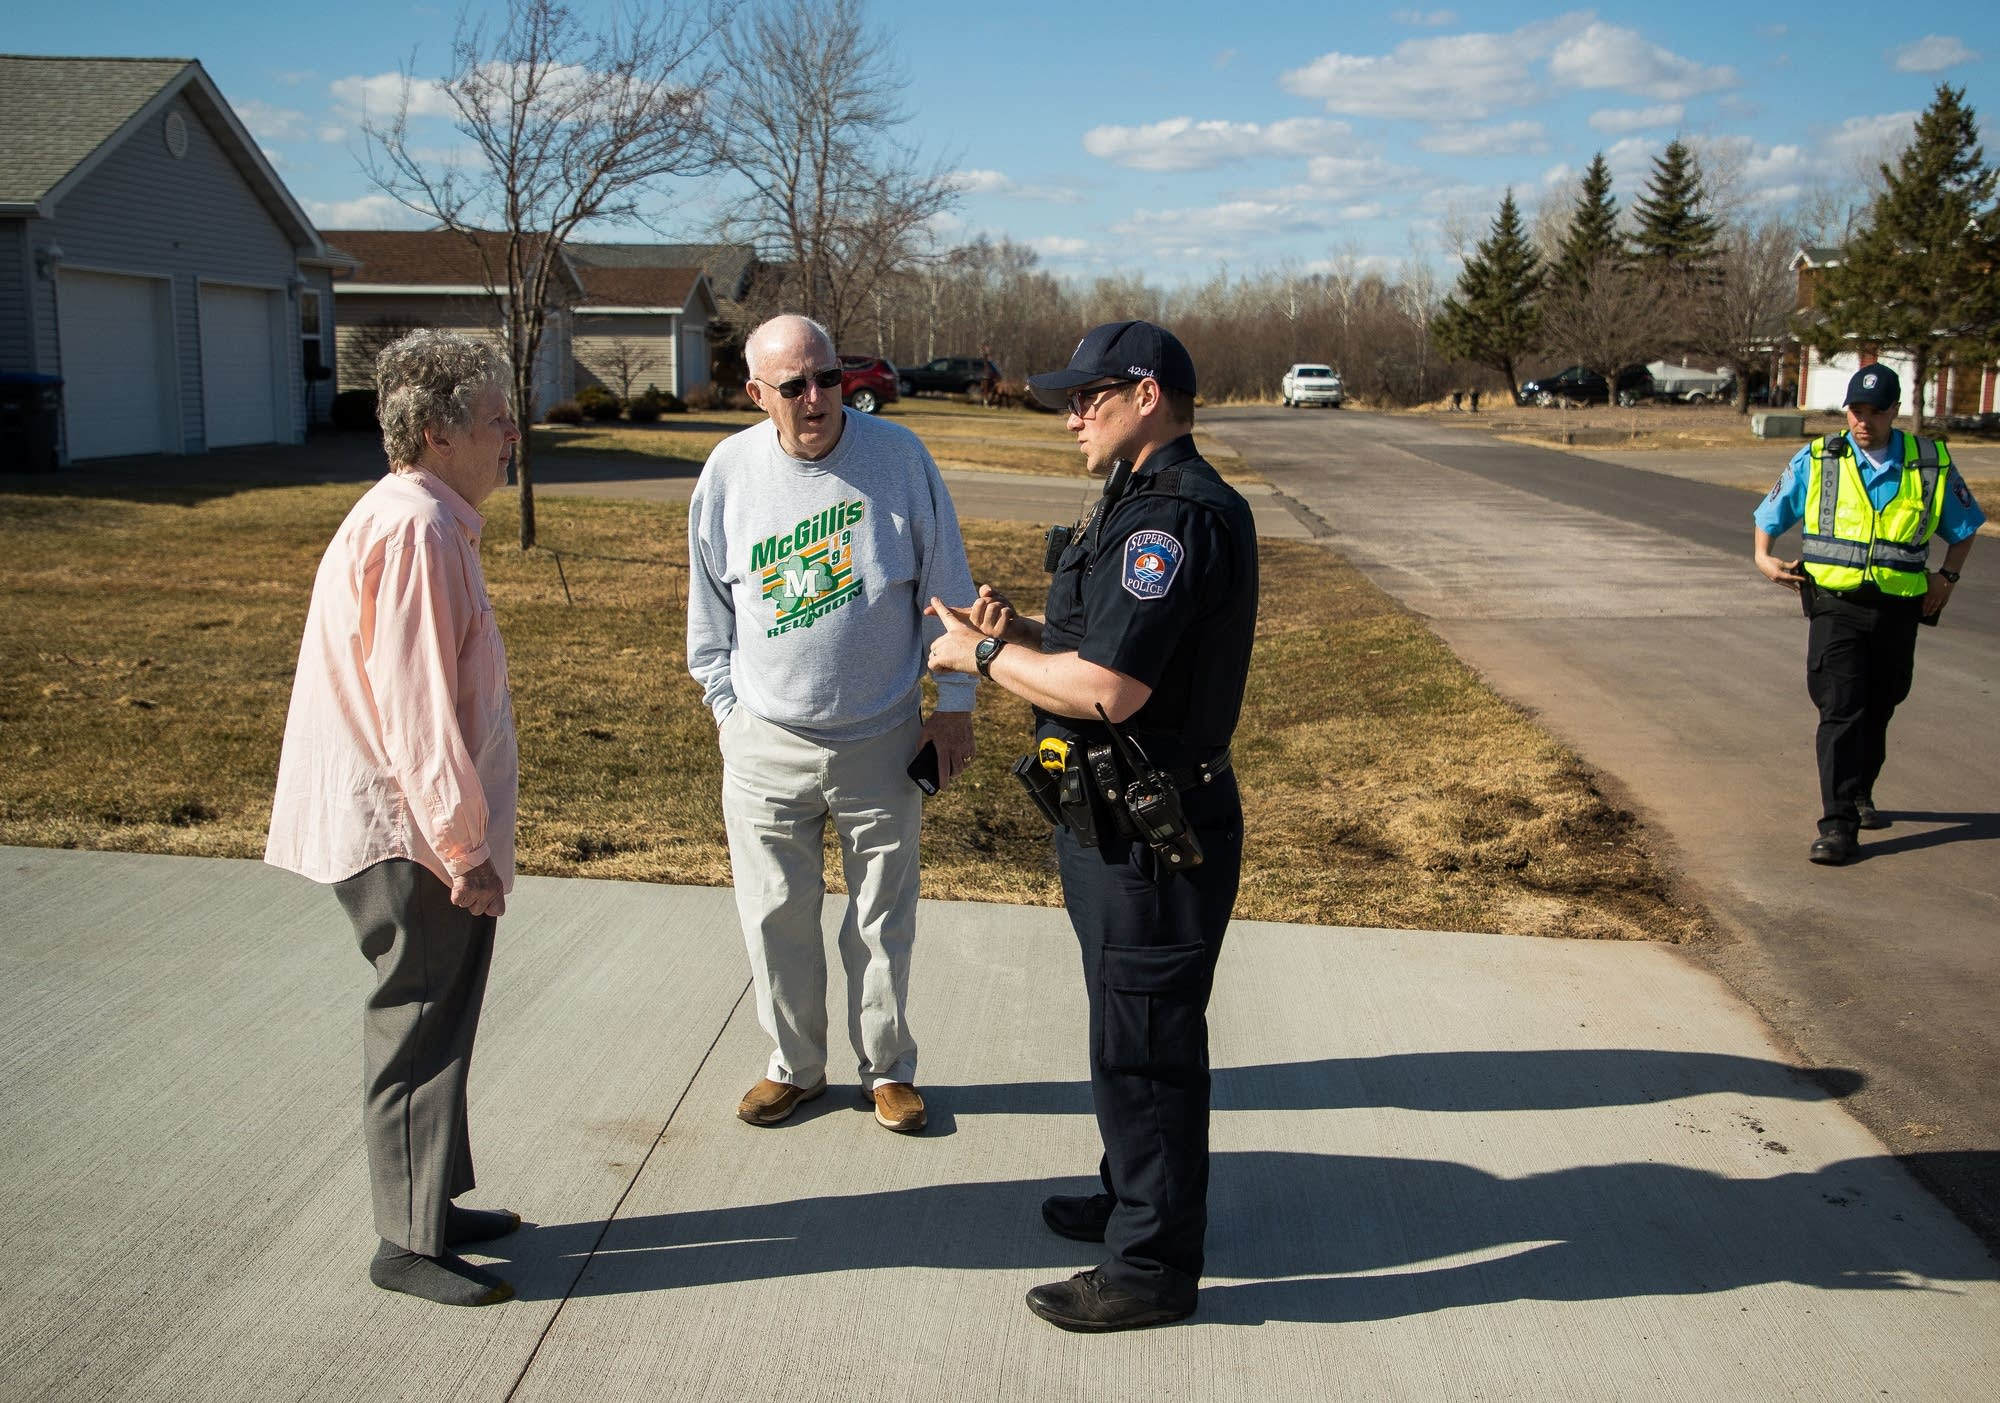 Superior officer Patrick Deignan talks to Connie Jackson and Gene McGillis.